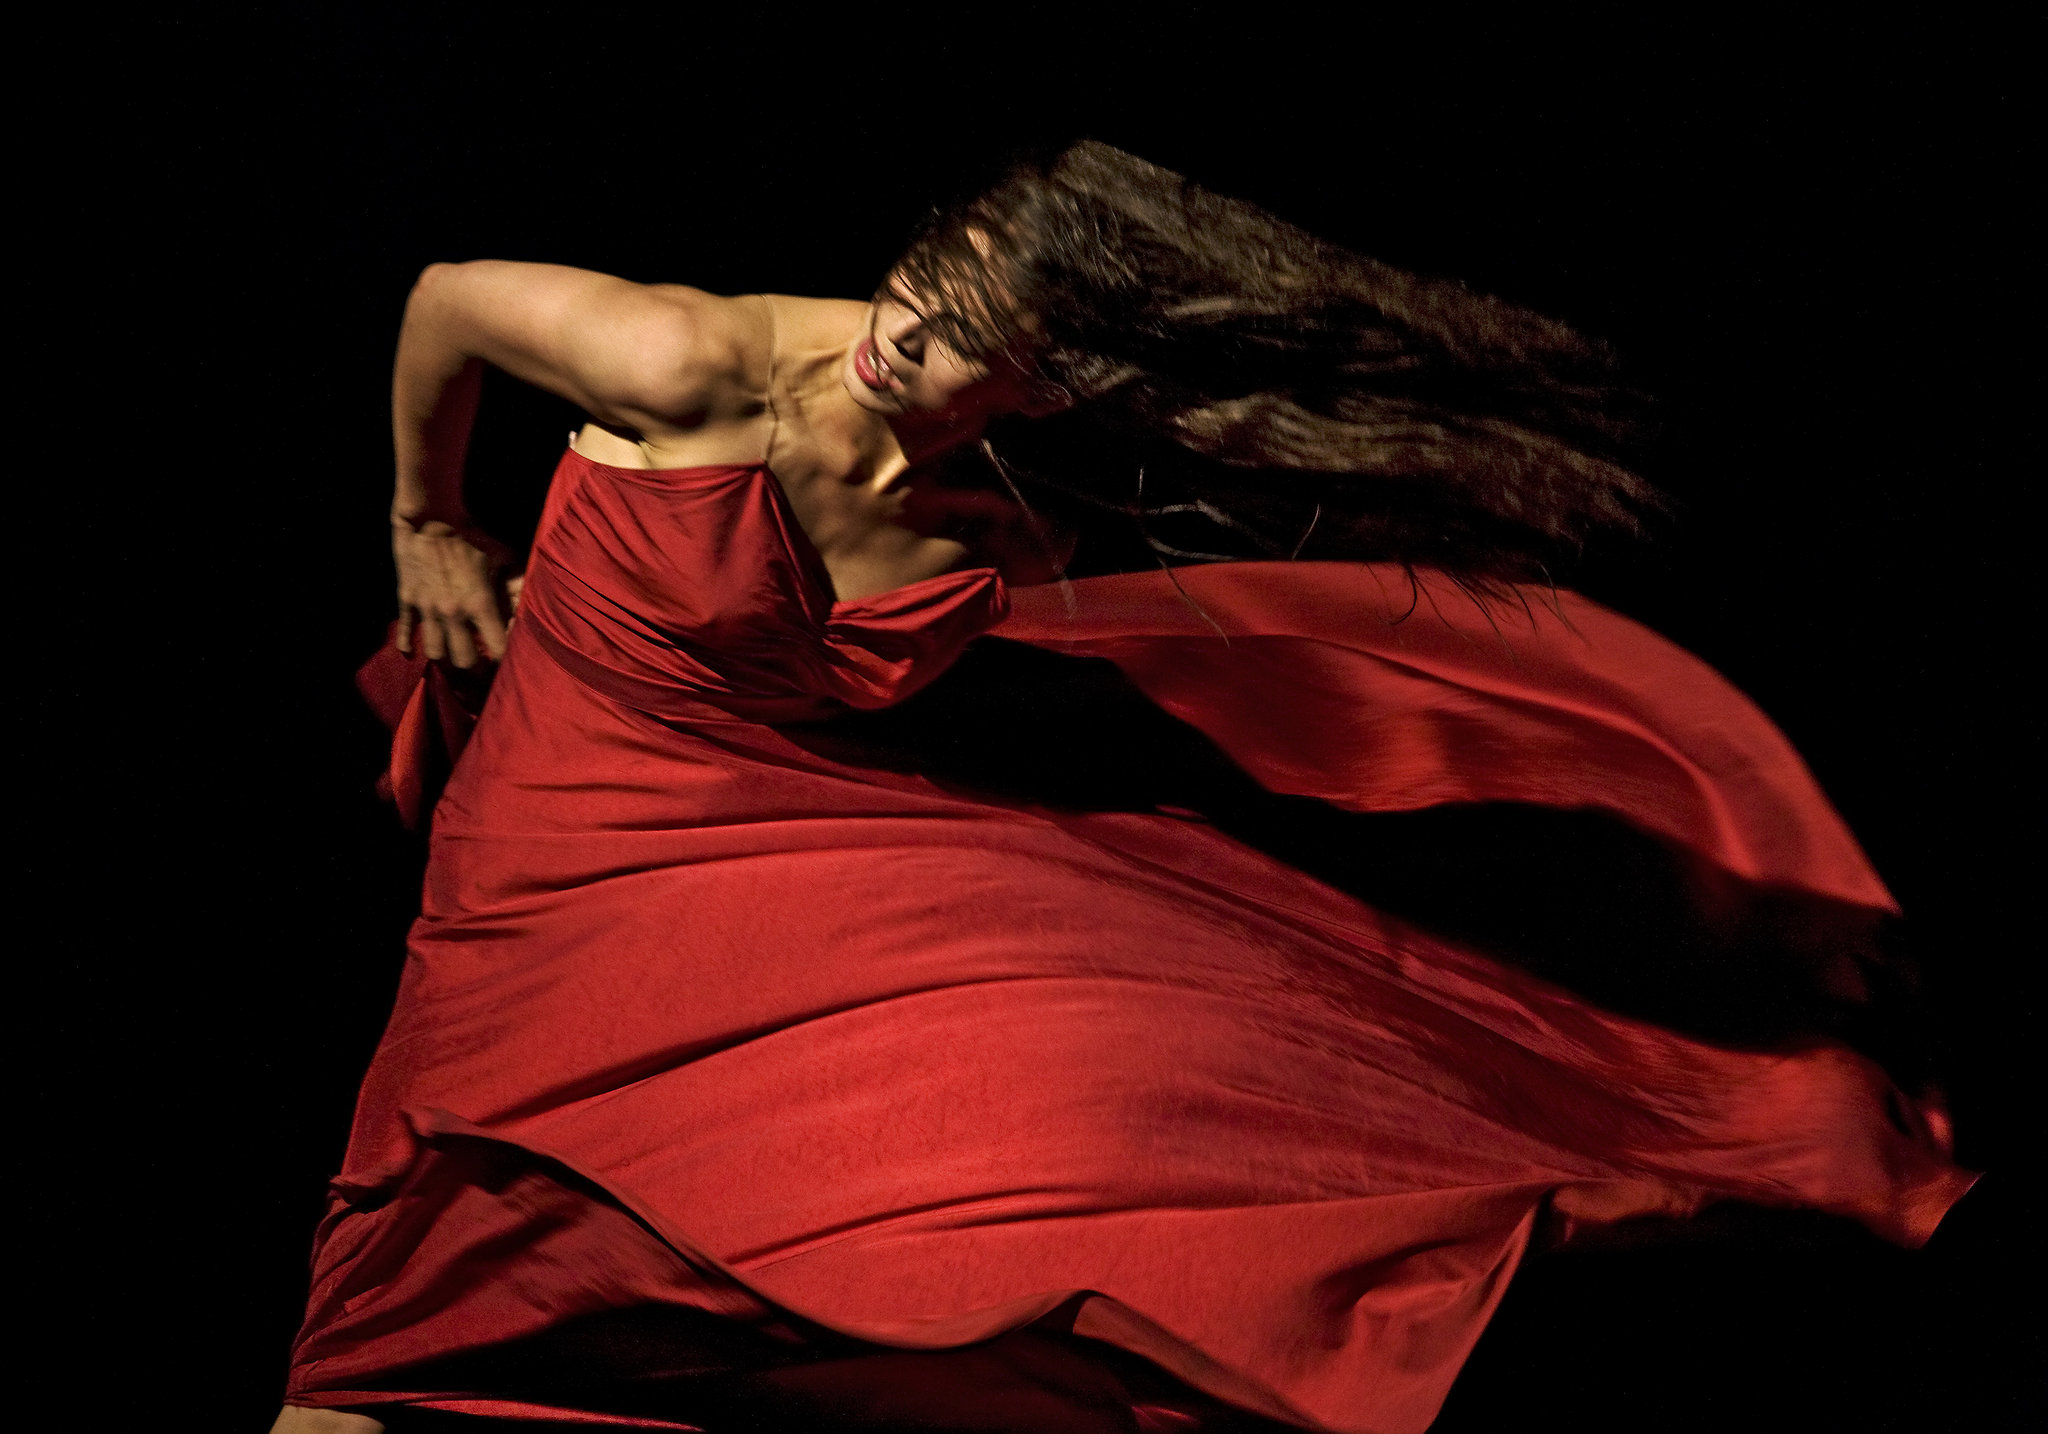 Tomato Wuppertal Pina Bausch S Tanztheater Wuppertal Performs In London The New